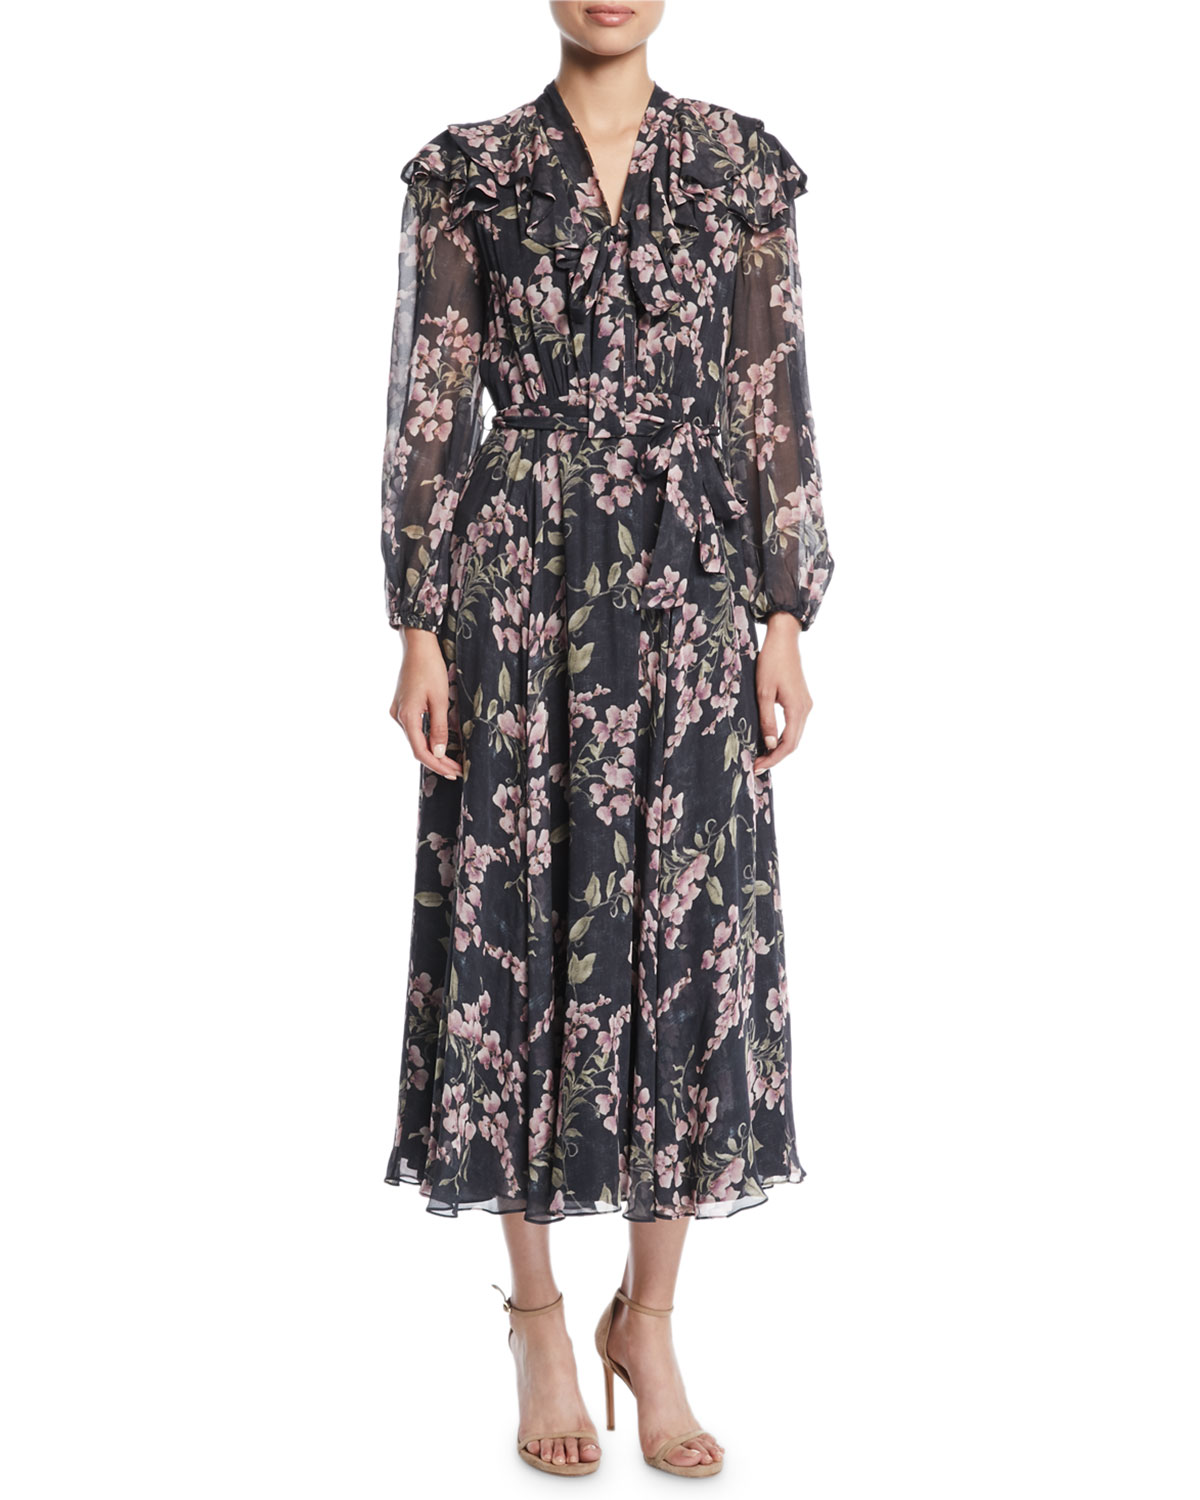 FLEETING FLOUNCE FLORAL LONG-SLEEVE MAXI DRESS